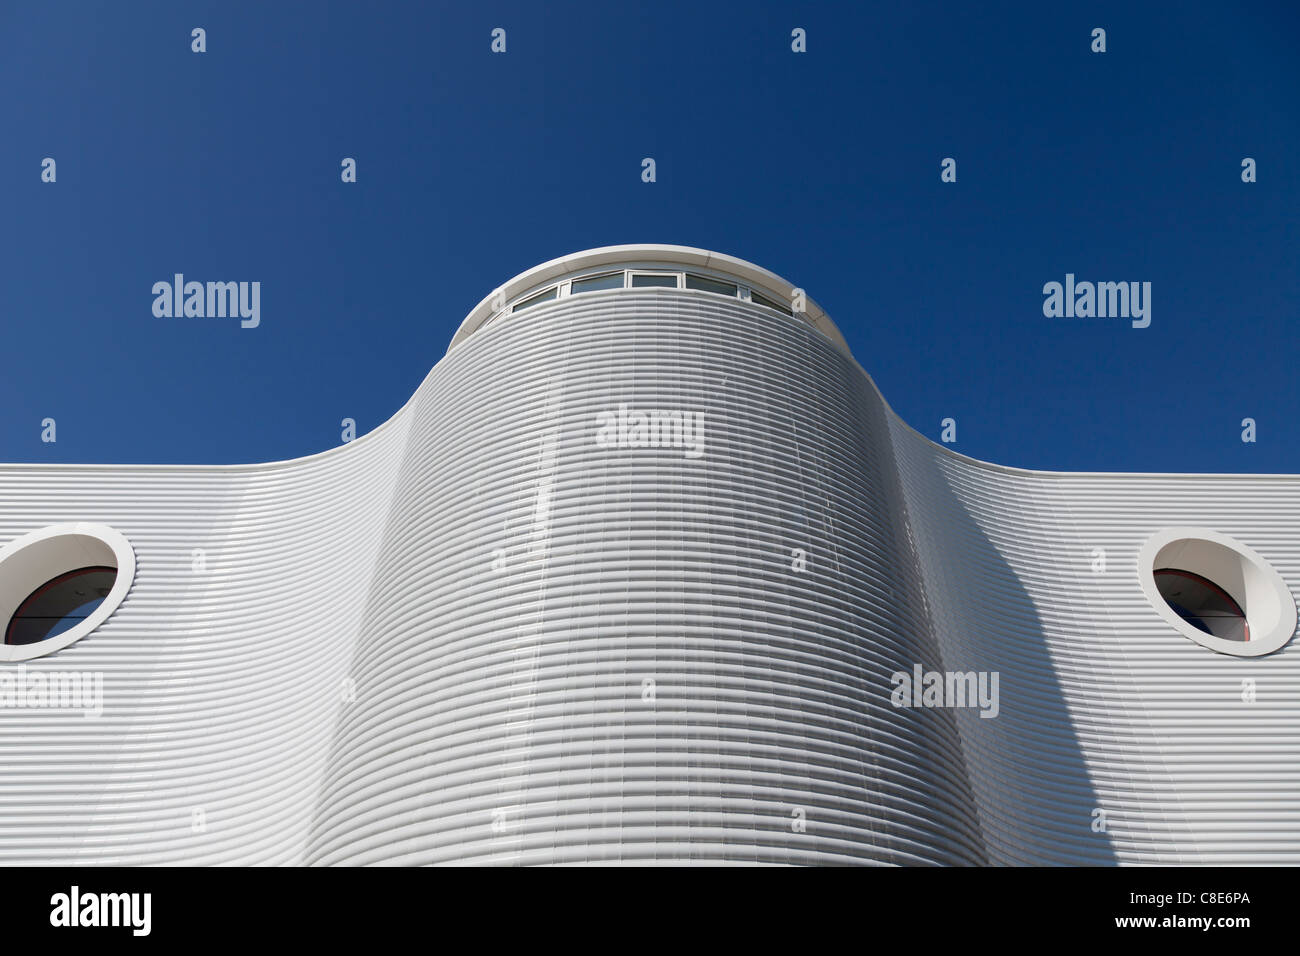 the curved and louvered, white exterior of the Eastpoint Centre in Southampton - Stock Image